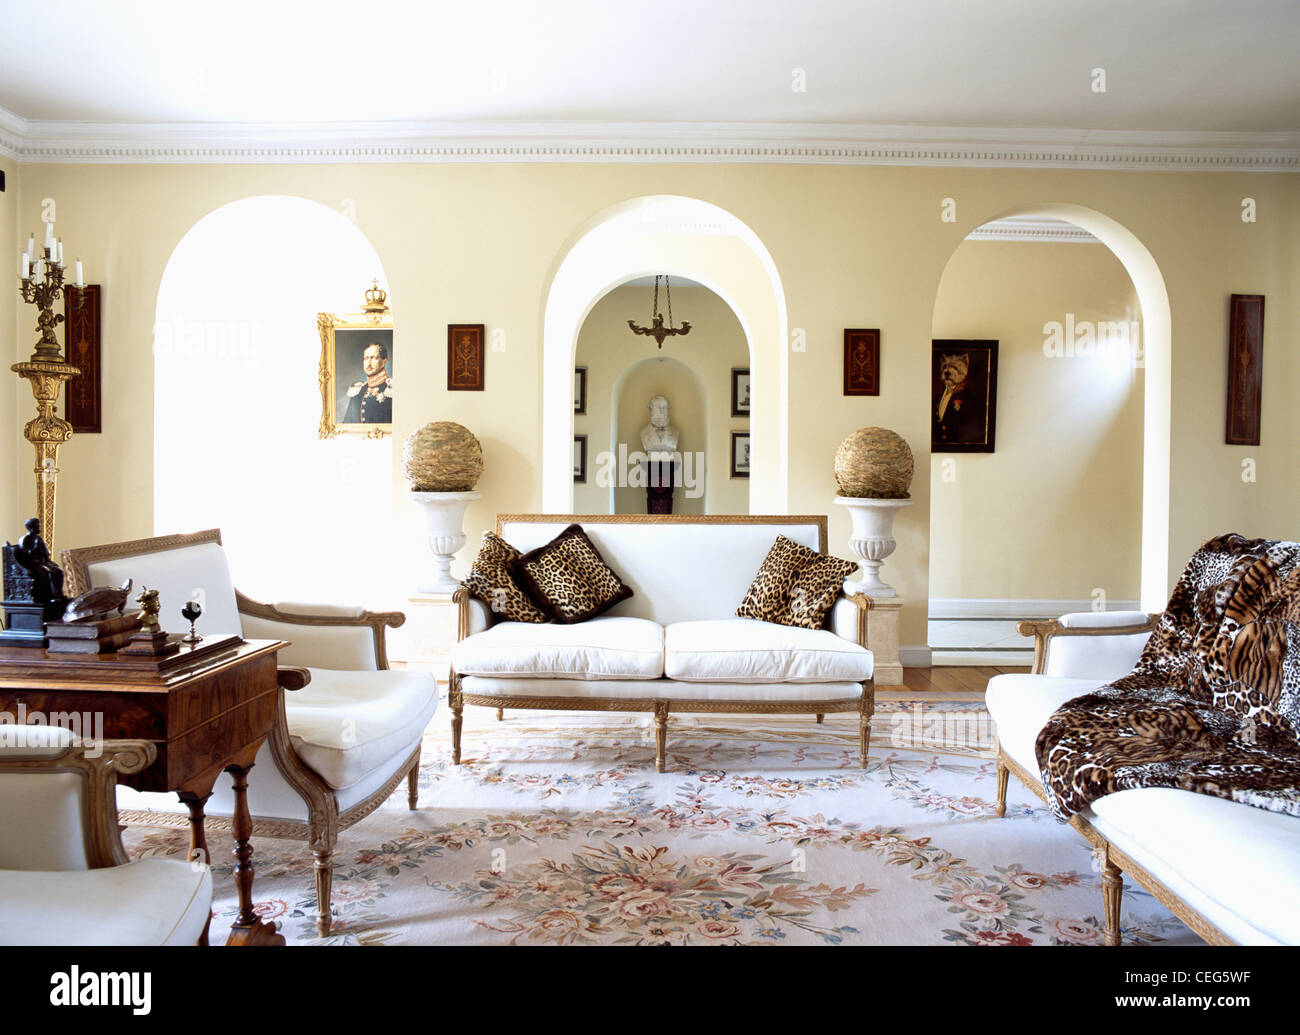 Leopard Print Living Room Leopard Print Cushions And Throw On White French Style Sofas In